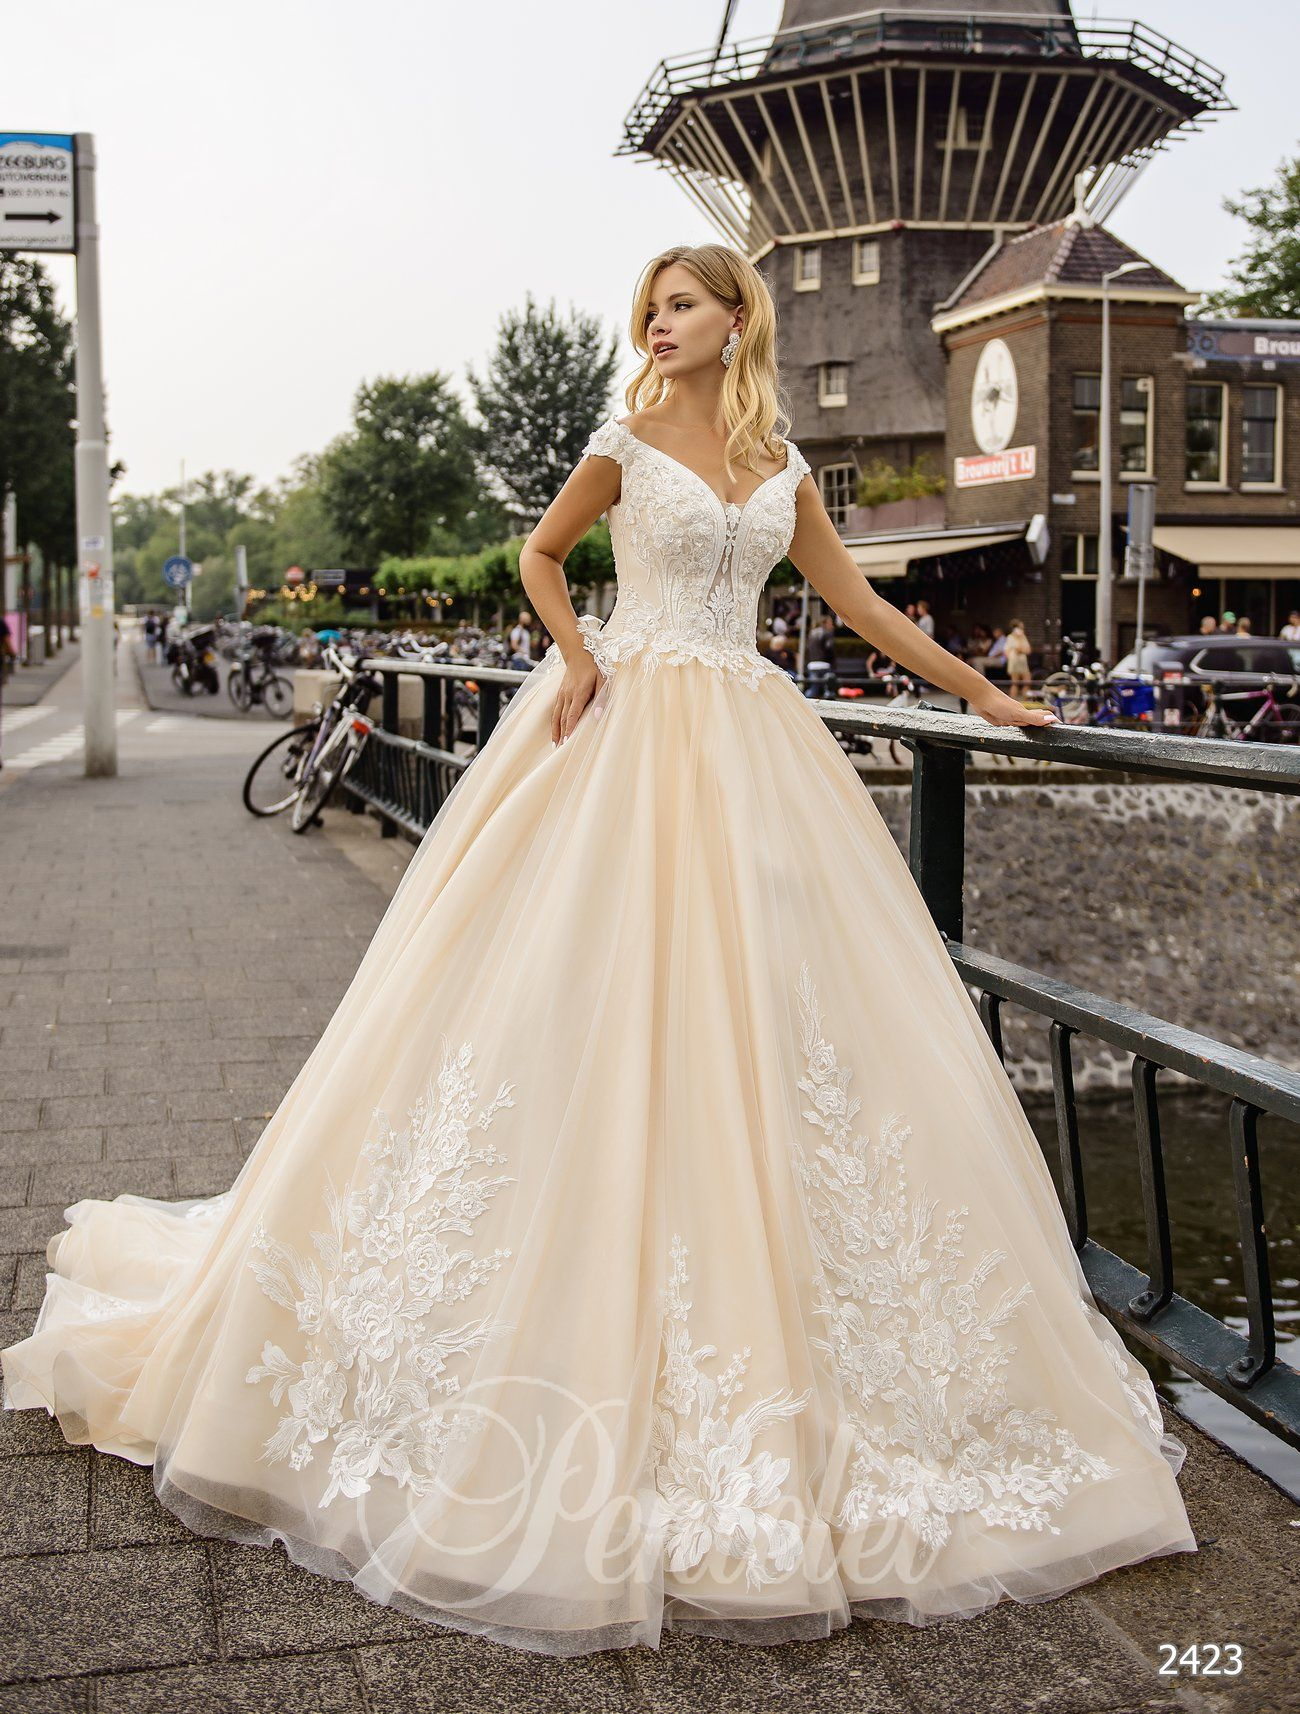 735897a0a6 Wholesale Wedding Dresses, Chic Wedding Dresses, Wedding Gowns, Bridal Gowns,  Beautiful